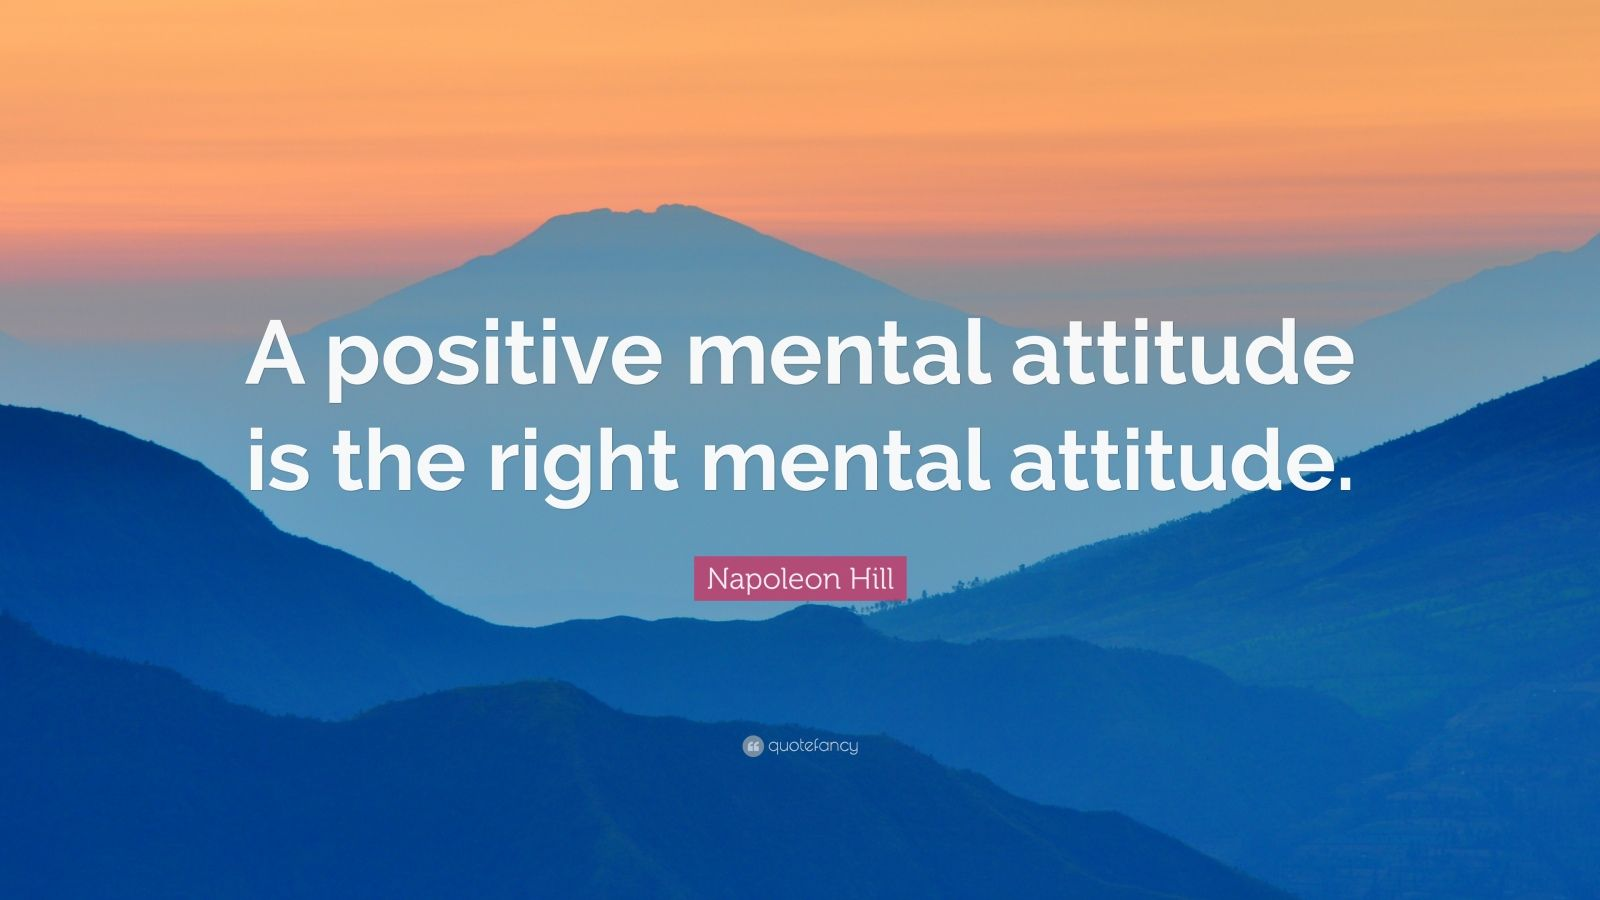 Business Quotes Wallpapers For Desktop Motivational Success Napoleon Hill Quote A Positive Mental Attitude Is The